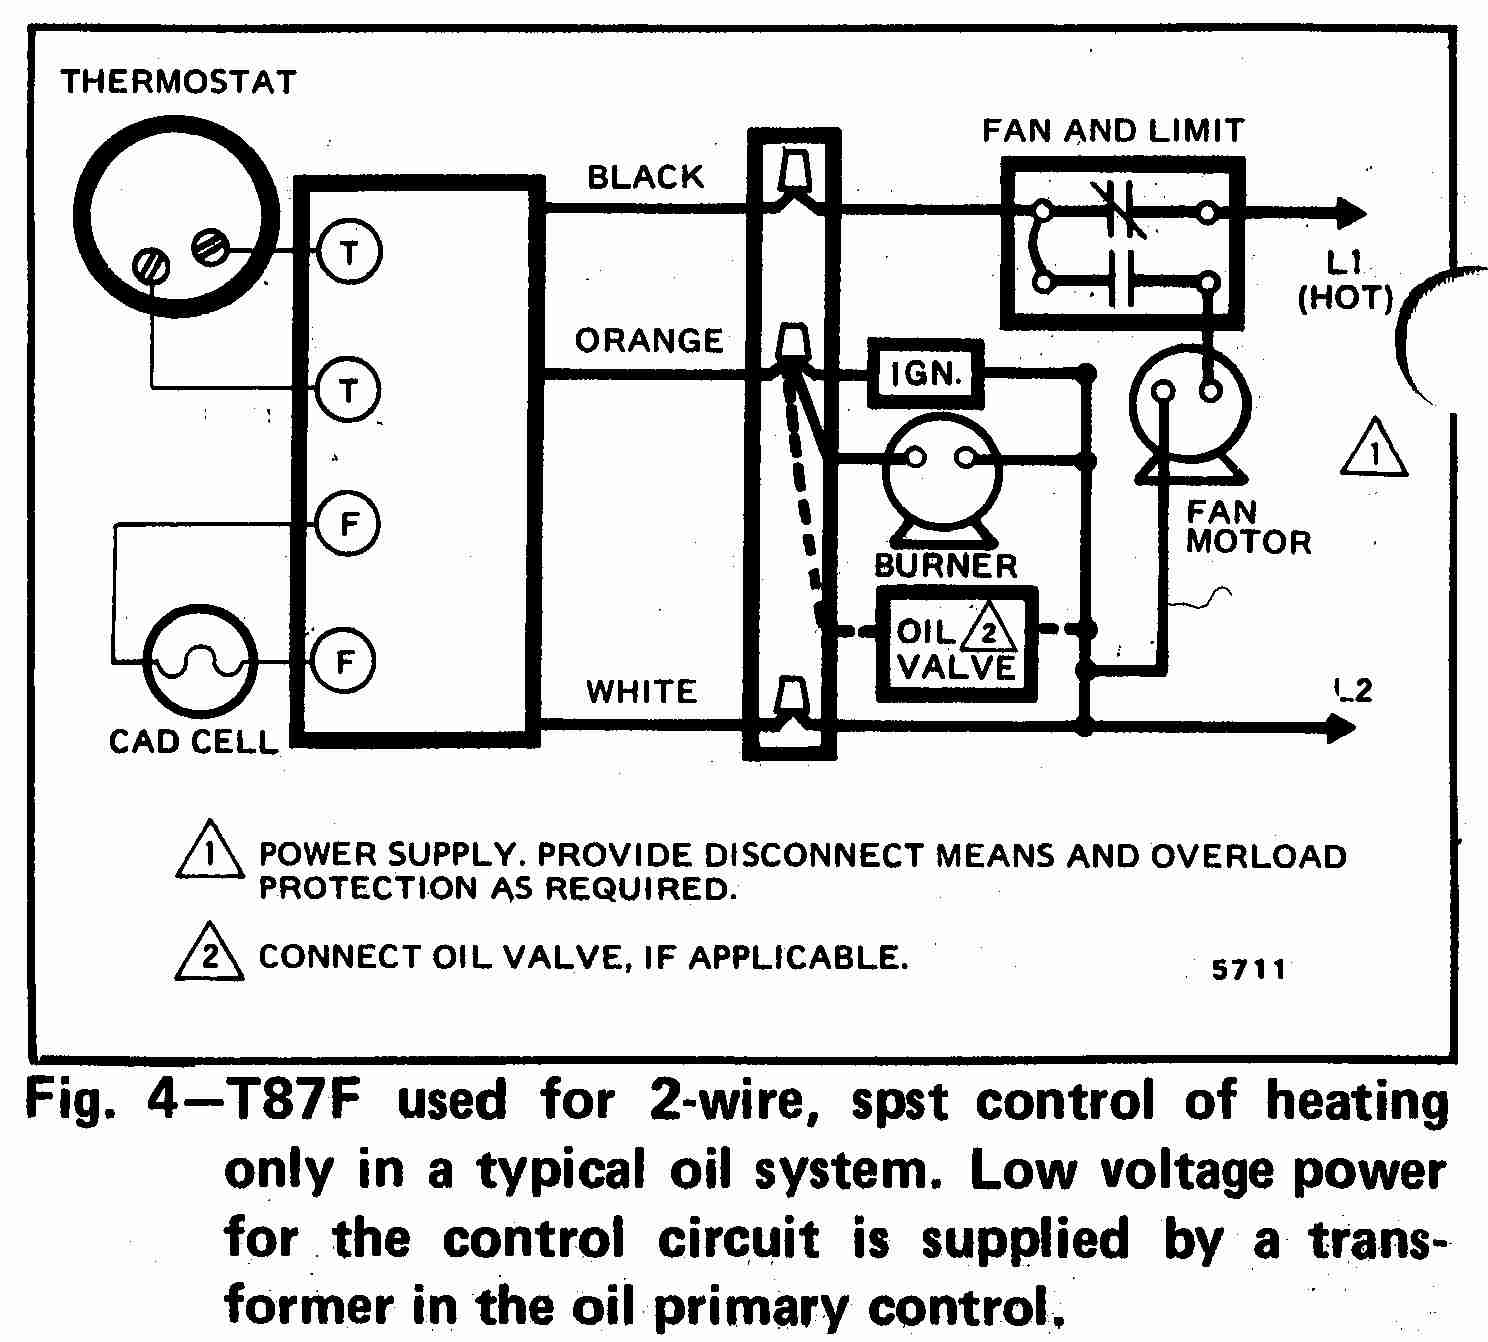 TT_T87F_0002_2W_DJF room thermostat wiring diagrams for hvac systems Basic Outlet Wiring Diagrams at n-0.co